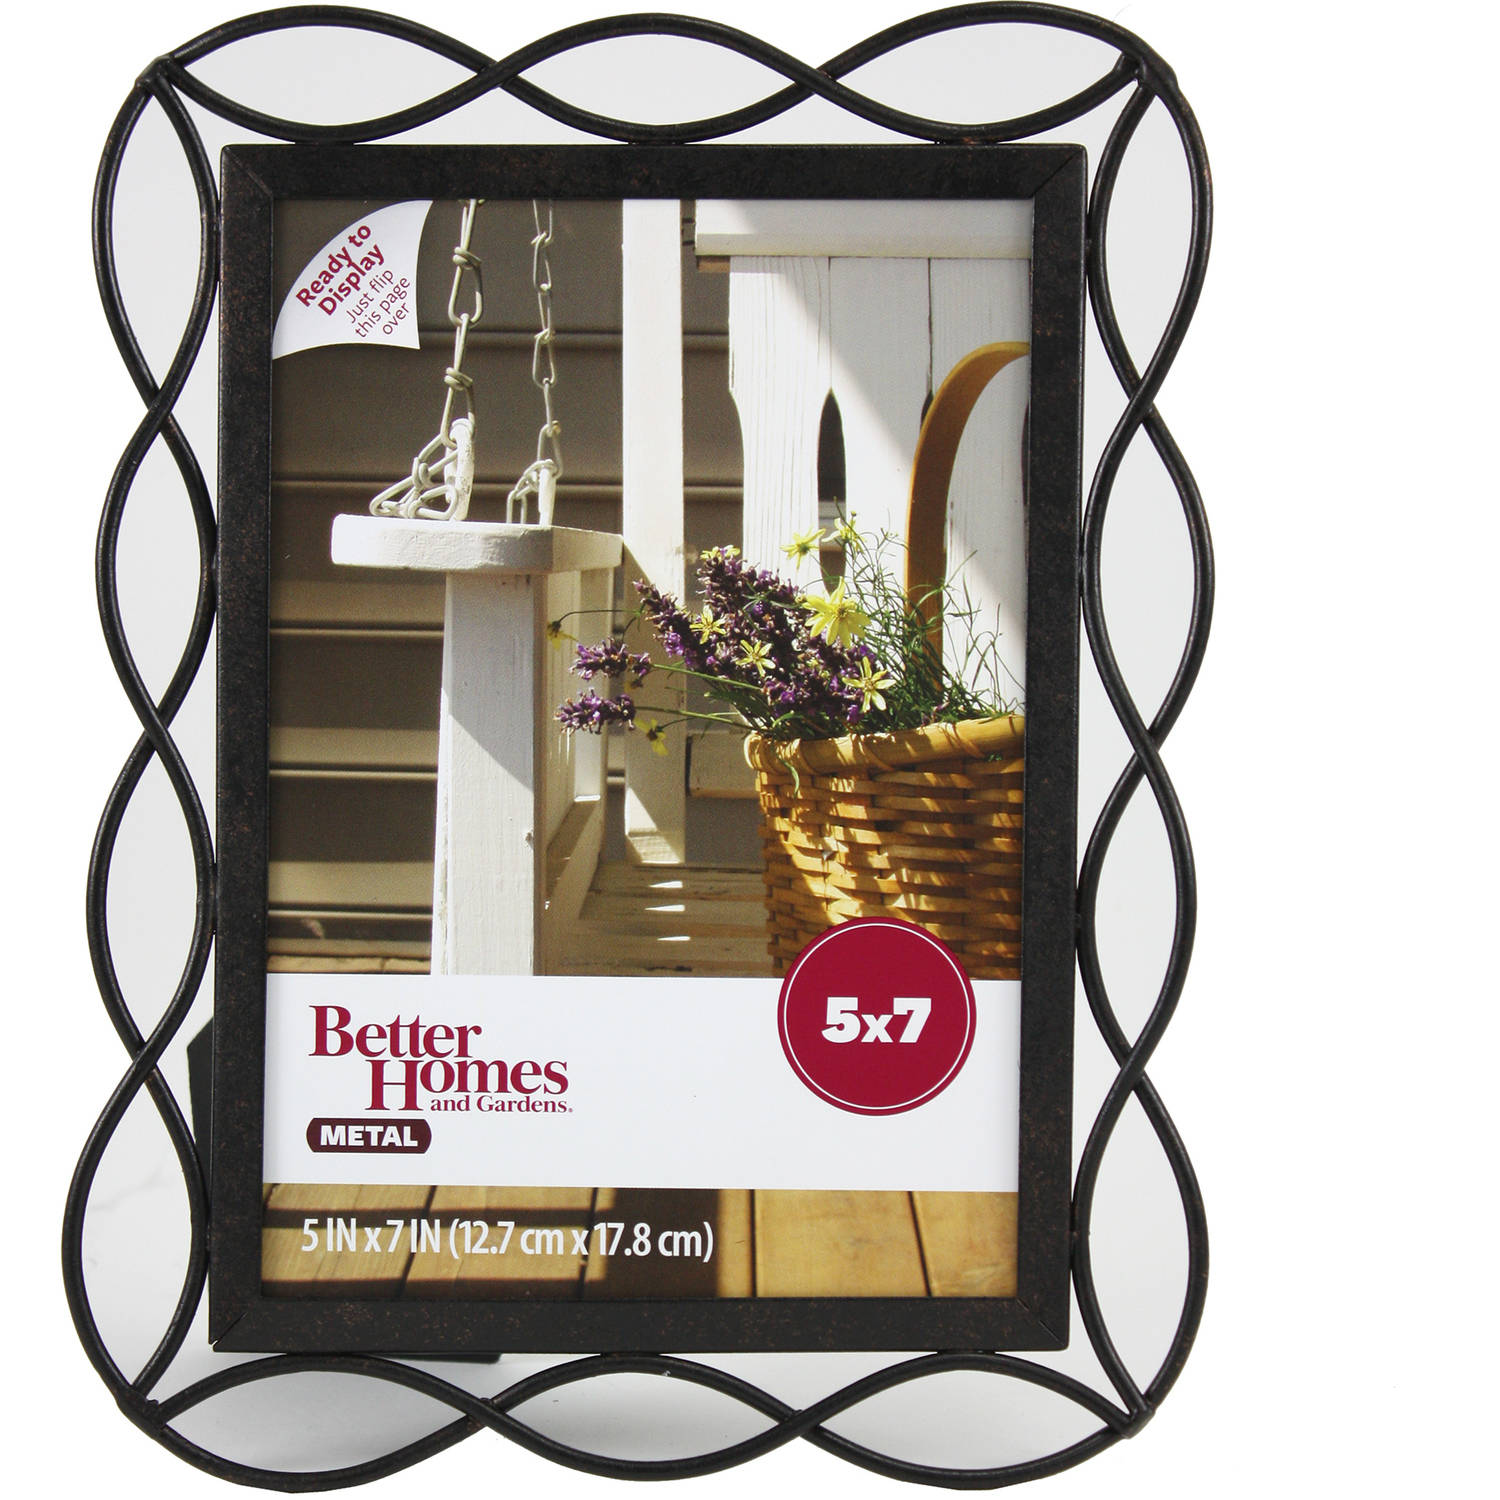 Better Homes and Gardens 5x7 Photo Frame, Tuscan Bronze Finish